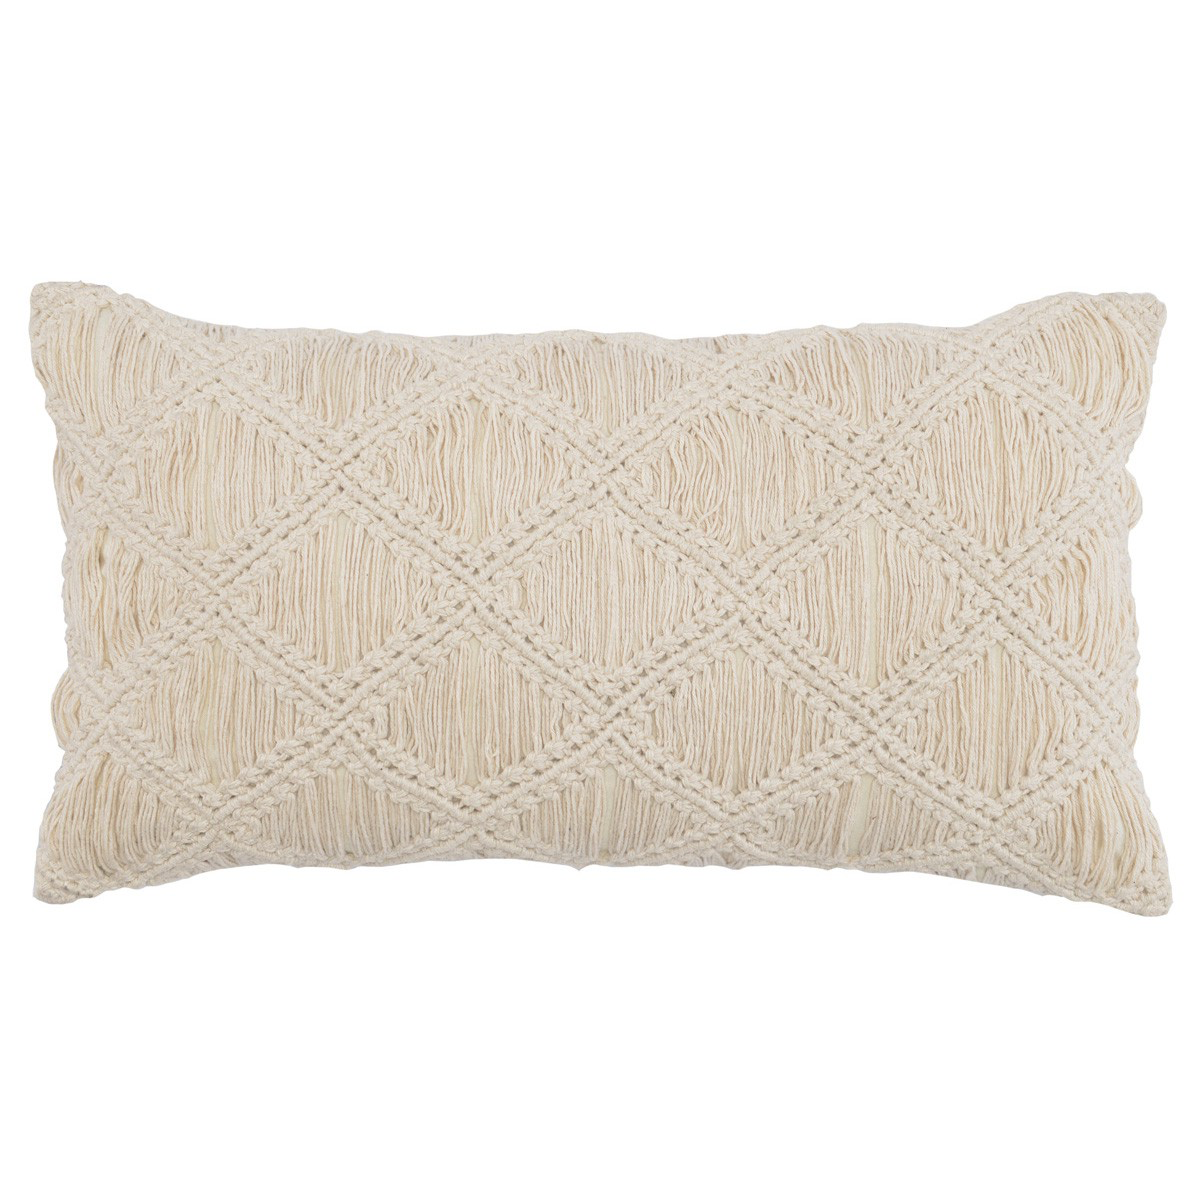 Natural Macrame Diamond Lumbar Pillow- 14x26""